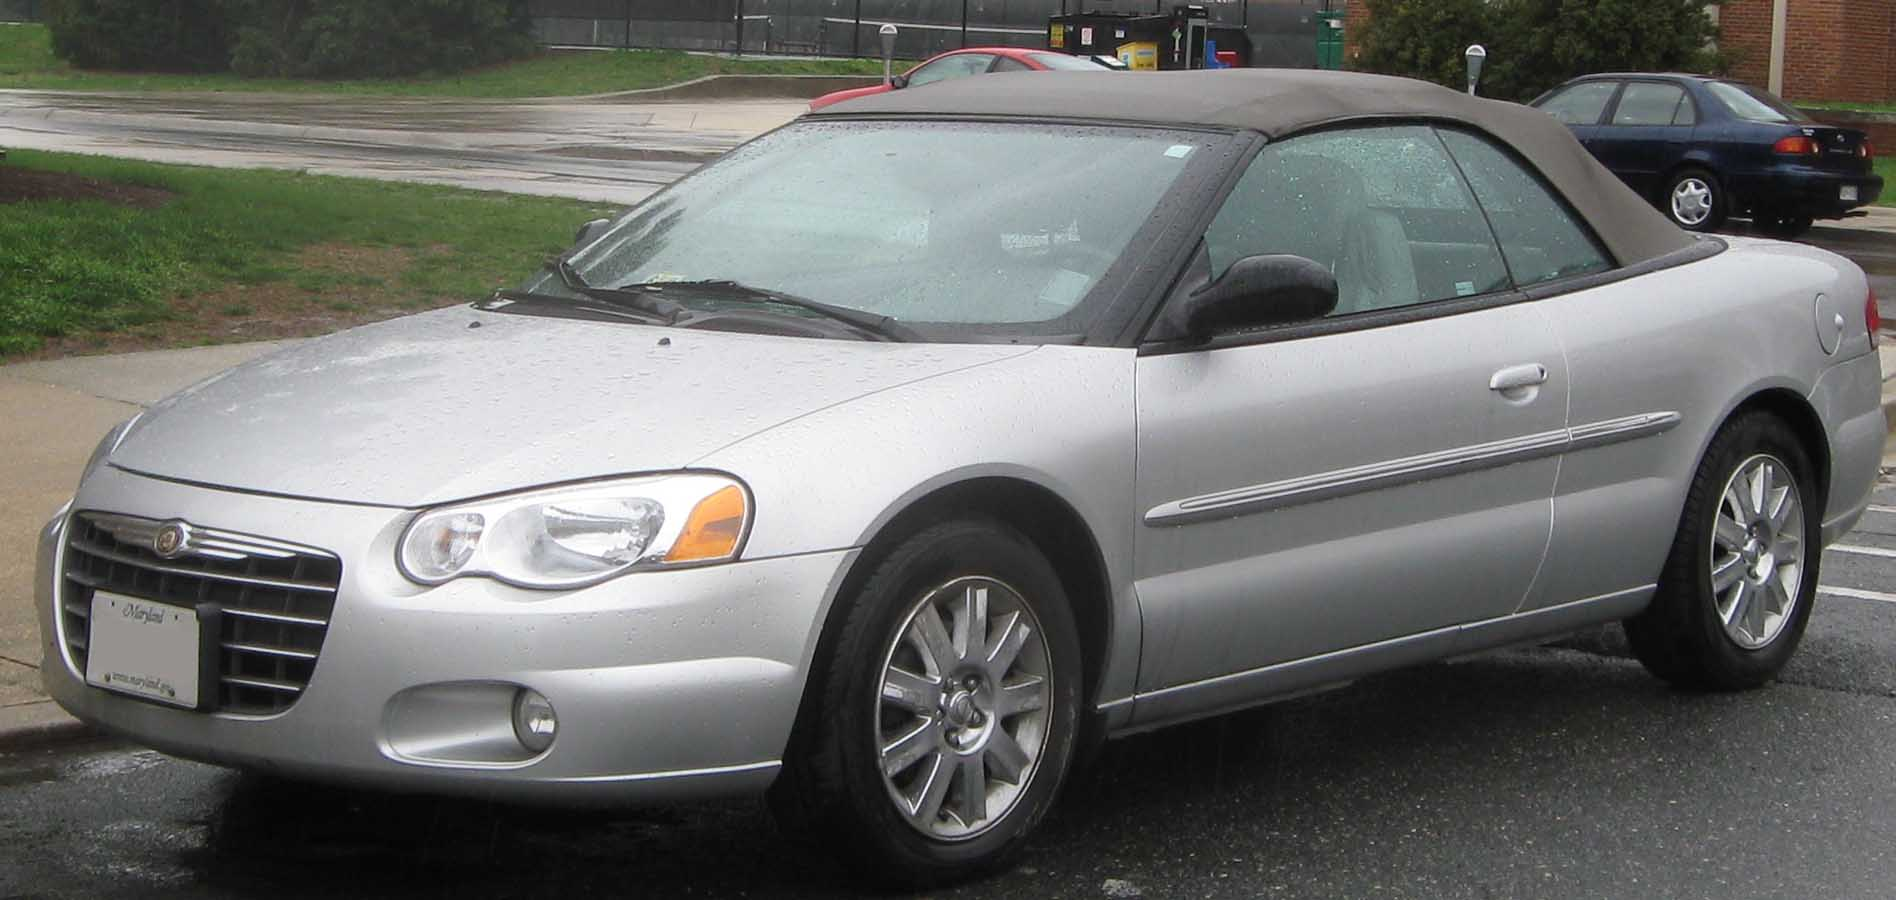 Convertible chrysler sebring forum #2